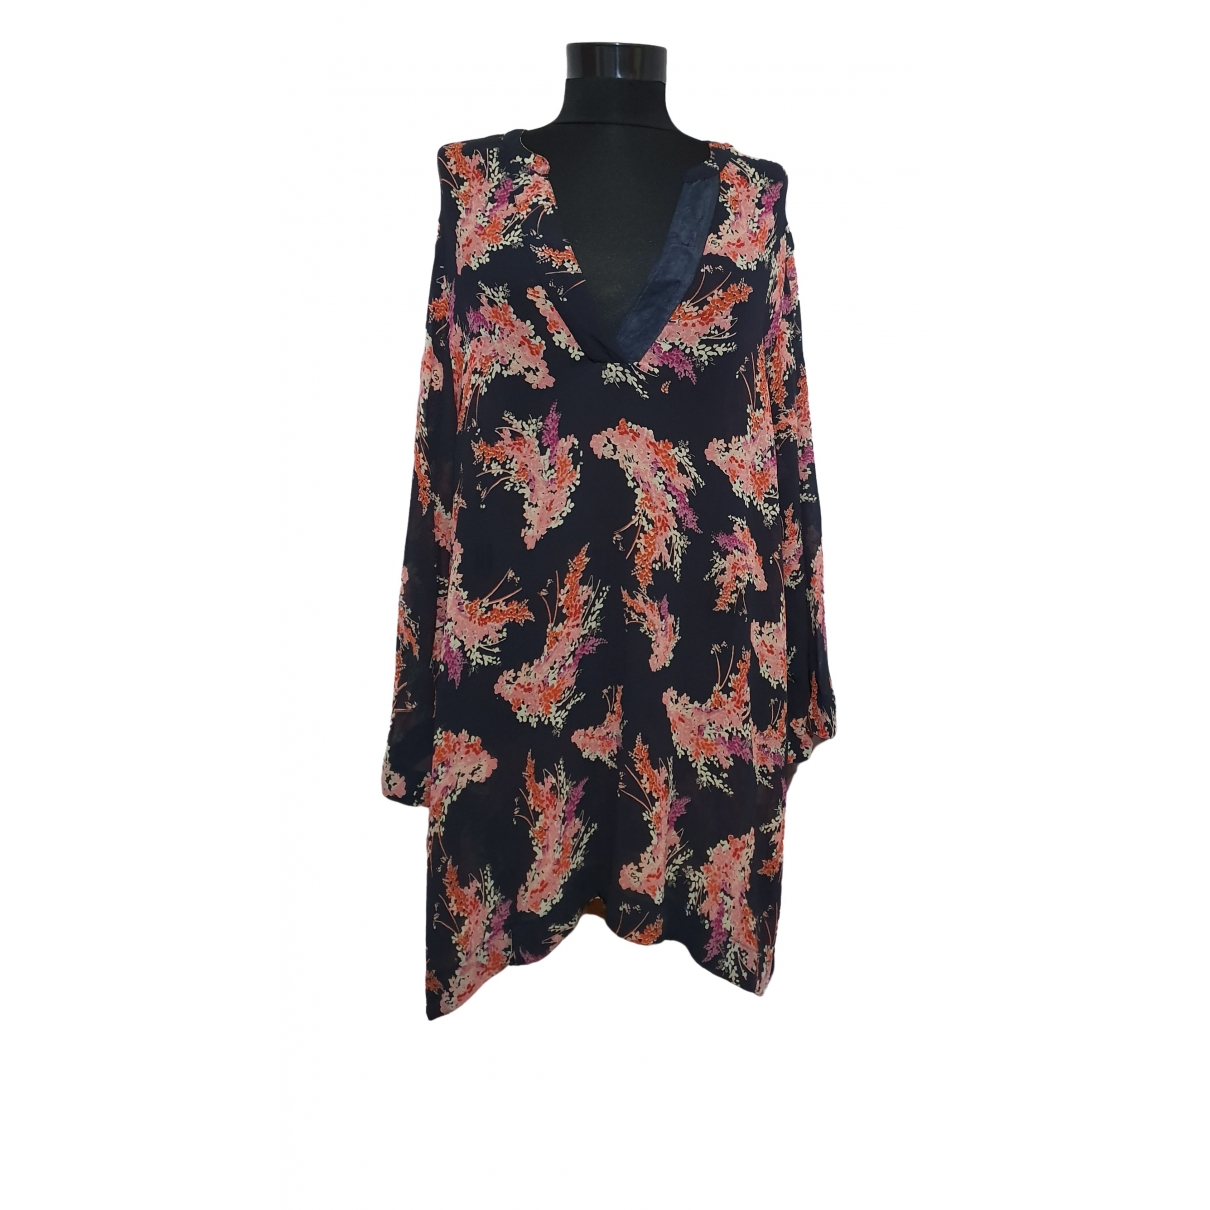 By Timo - Top   pour femme - multicolore